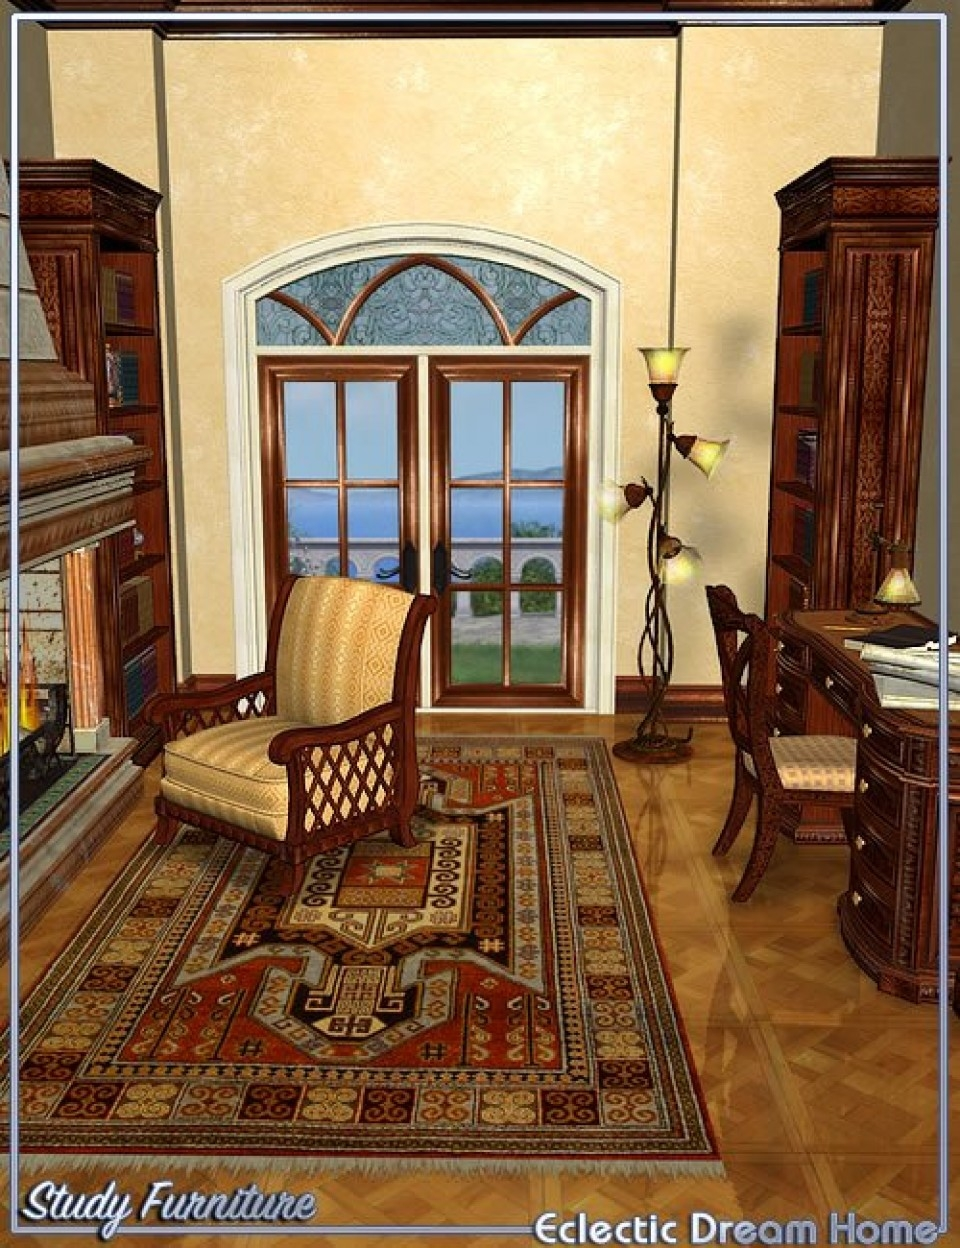 Dream Home Study Furniture Eclectic 3d Models And 3d Software Regarding Home Study Furniture (View 4 of 15)